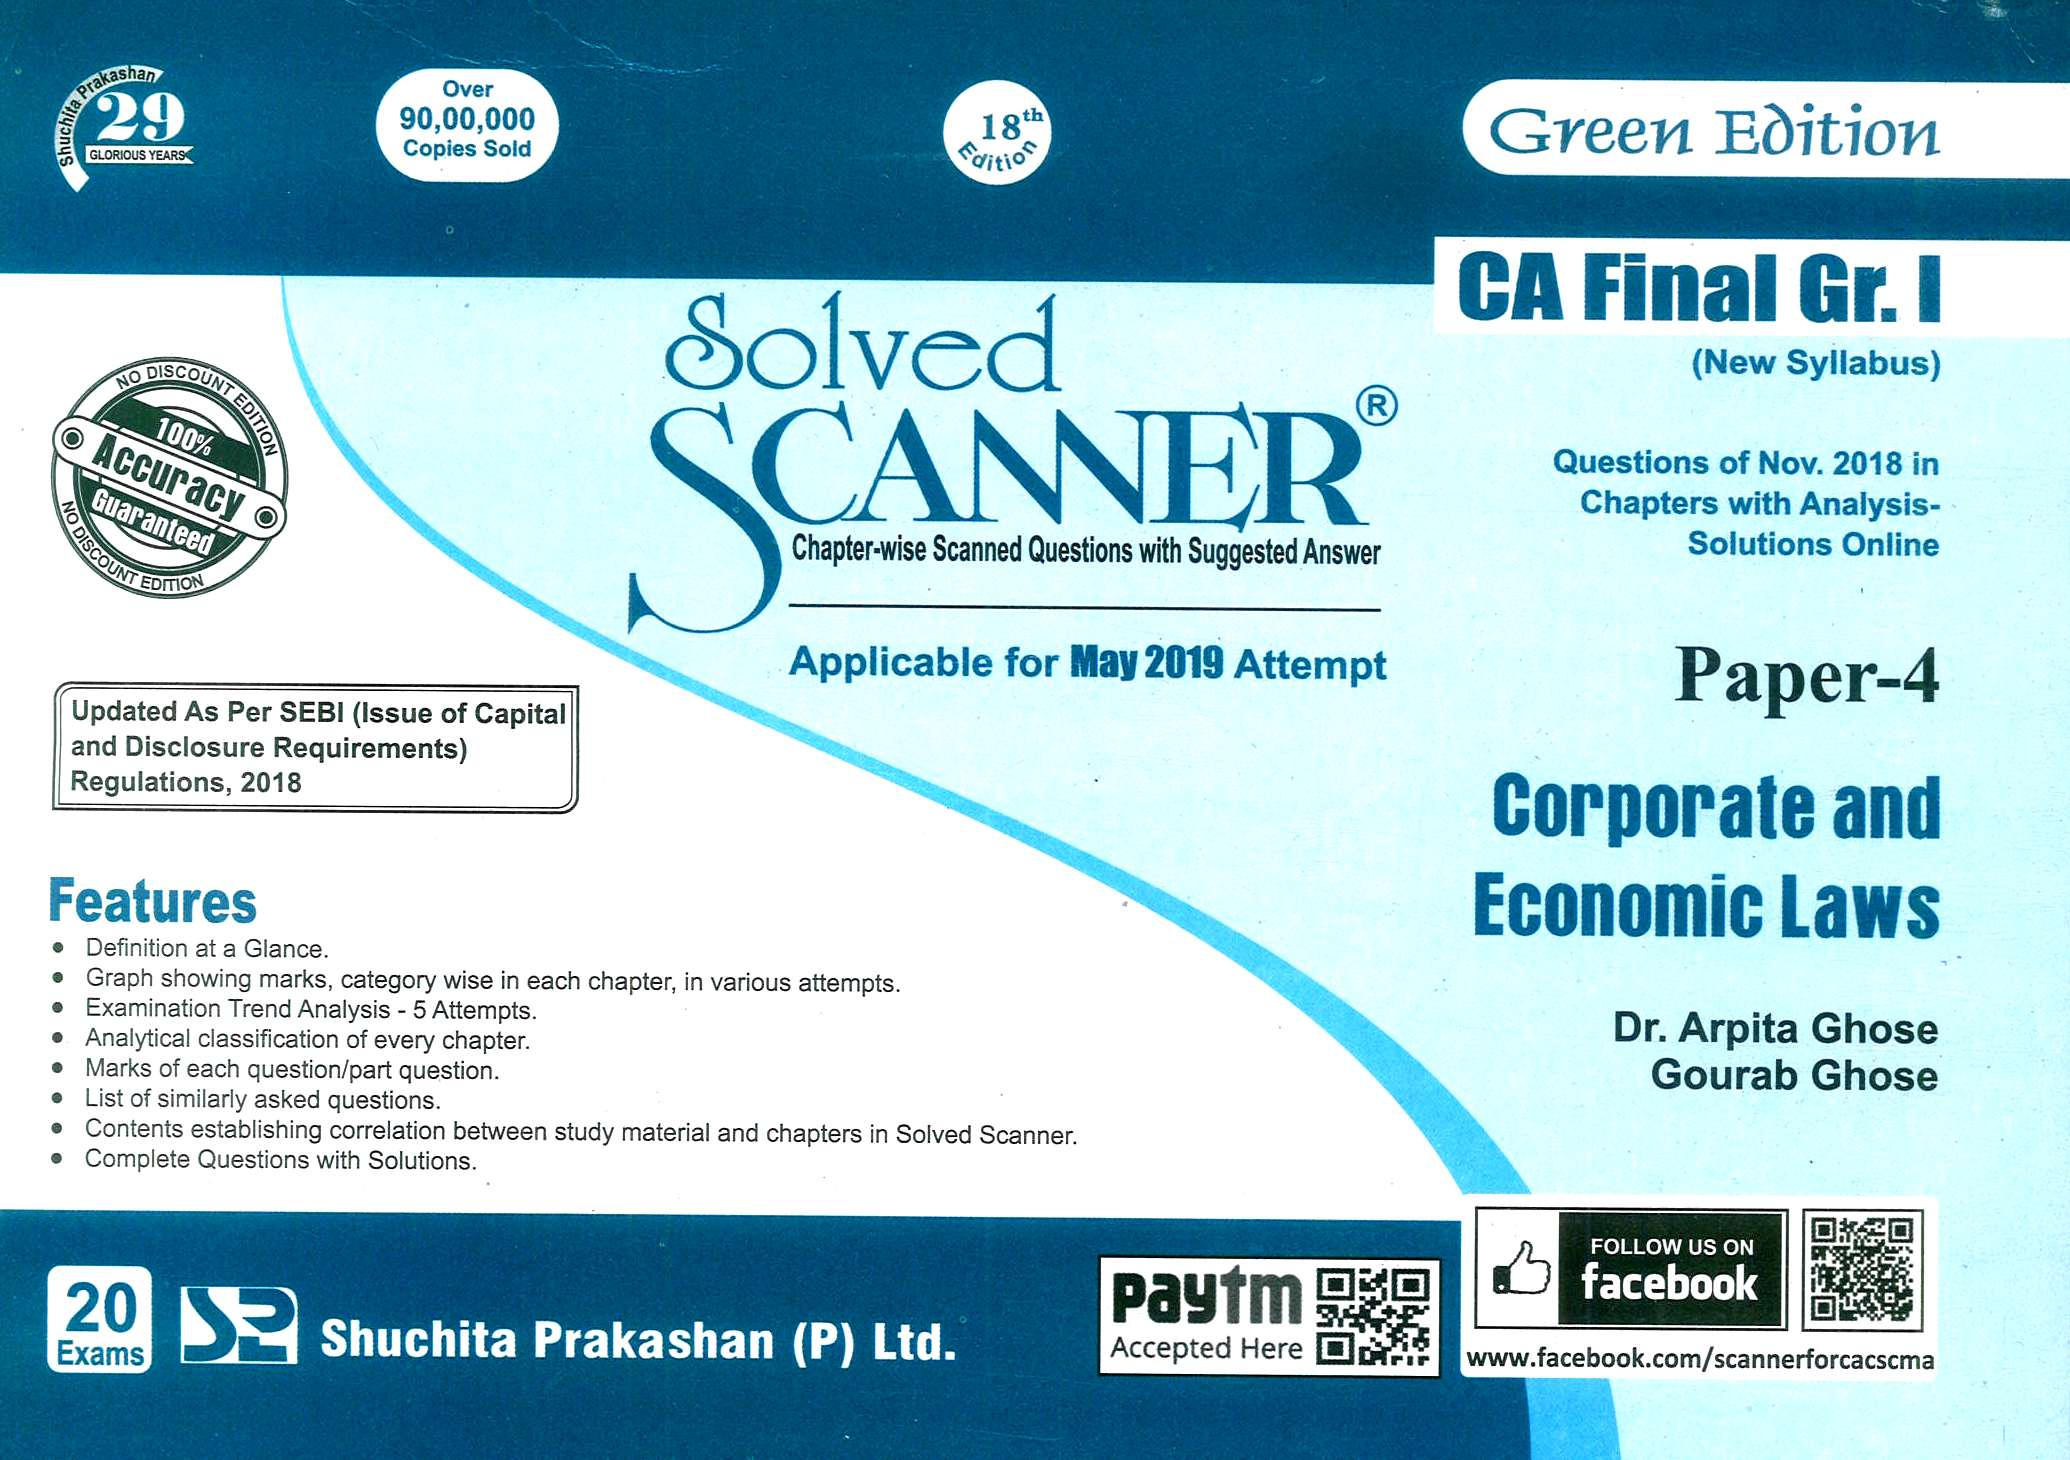 Shuchita Solved Scanner CA Final Group I Paper -4 Corporate and Economic Laws By Dr. Arpita Ghose and Gourab Ghose Applicable for May 2019 Exam New Syllabus (Shuchita Prakashan) Edition 2019